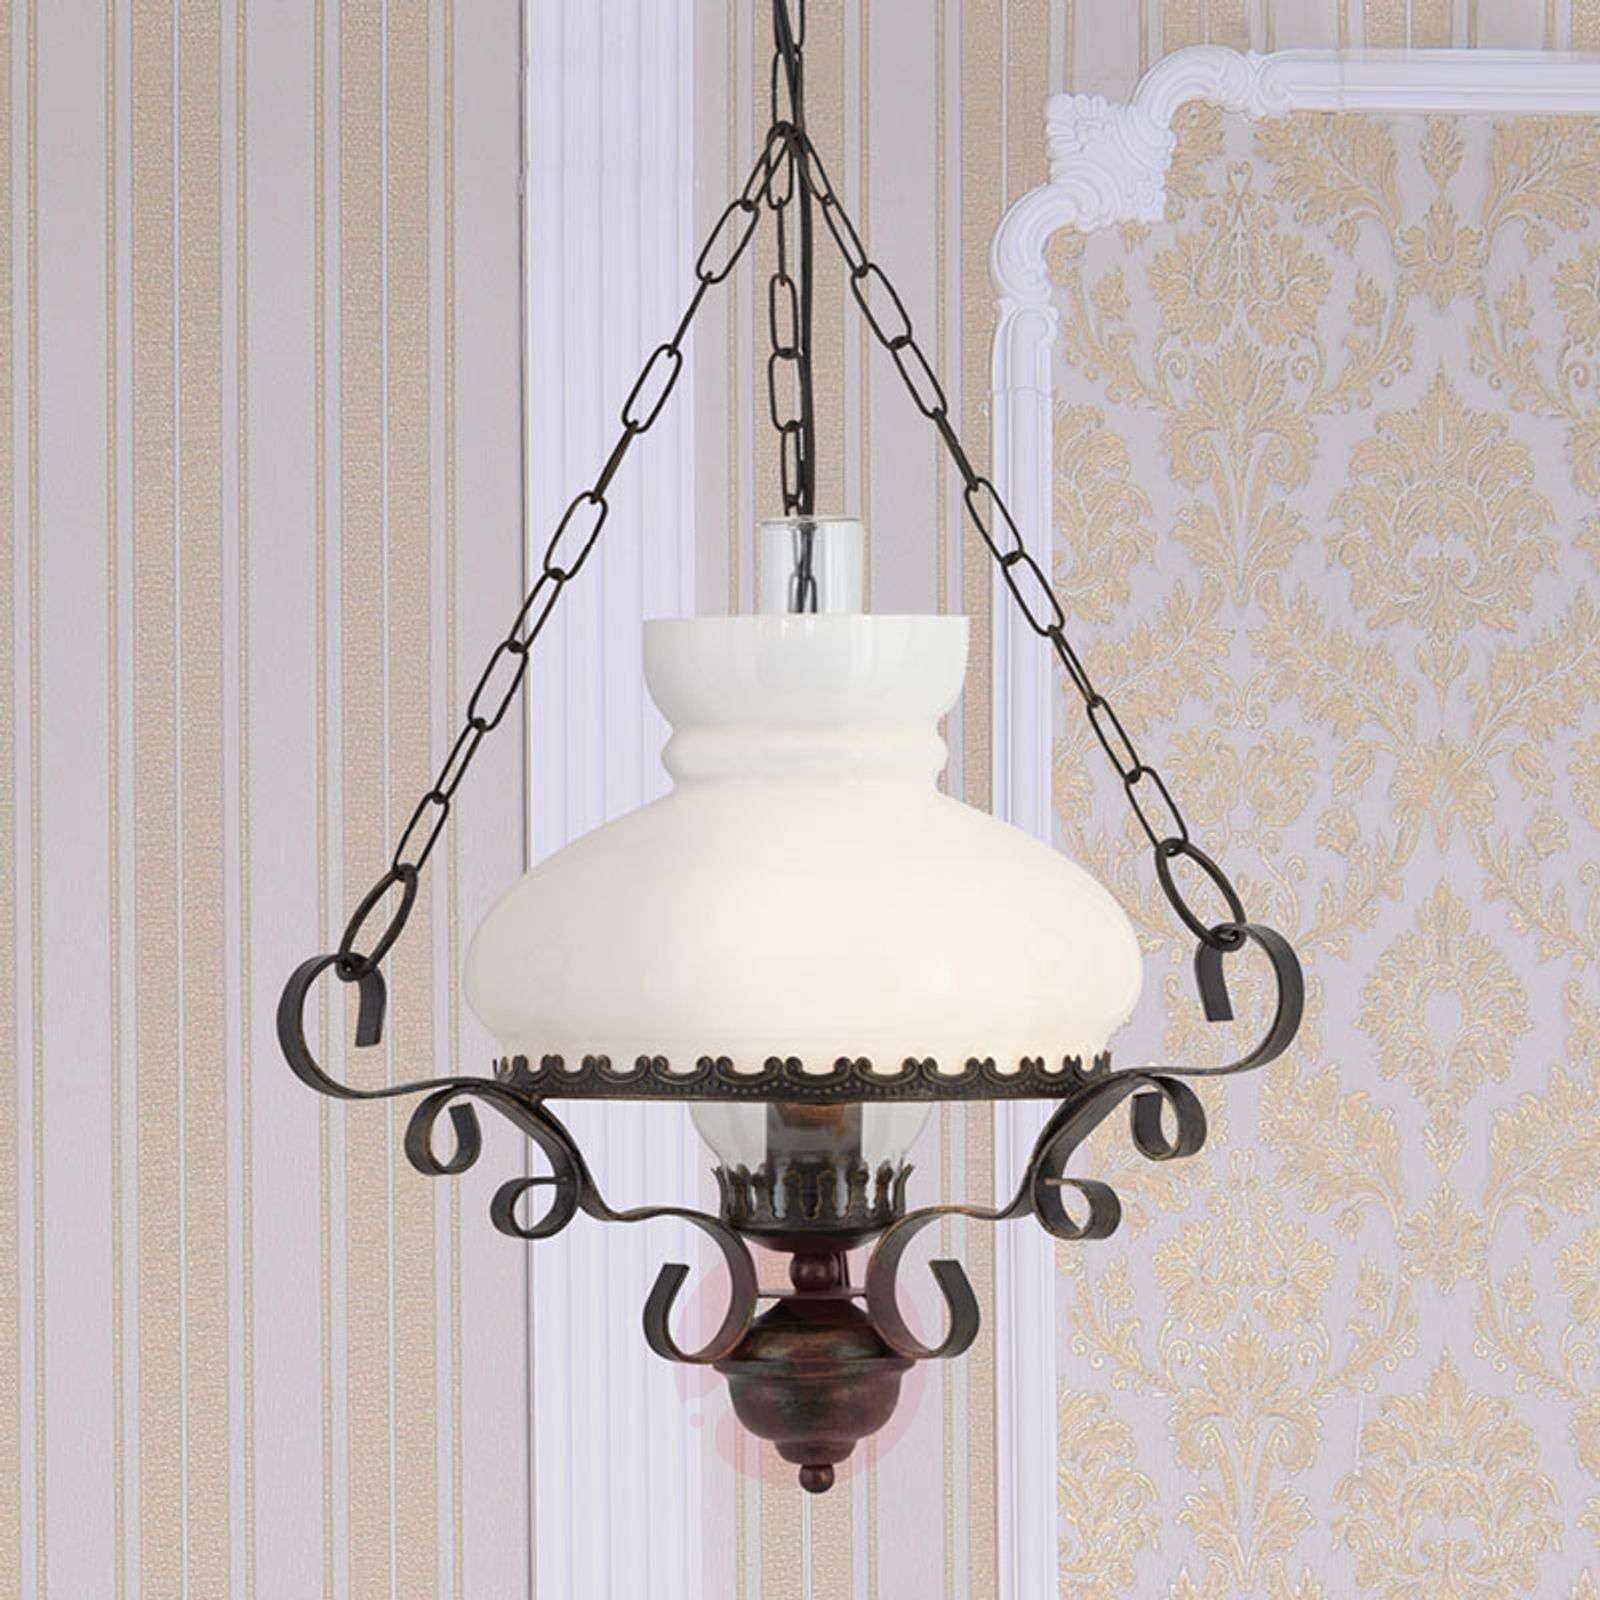 Oil lantern hanging lamp with antique charm 8570145 02